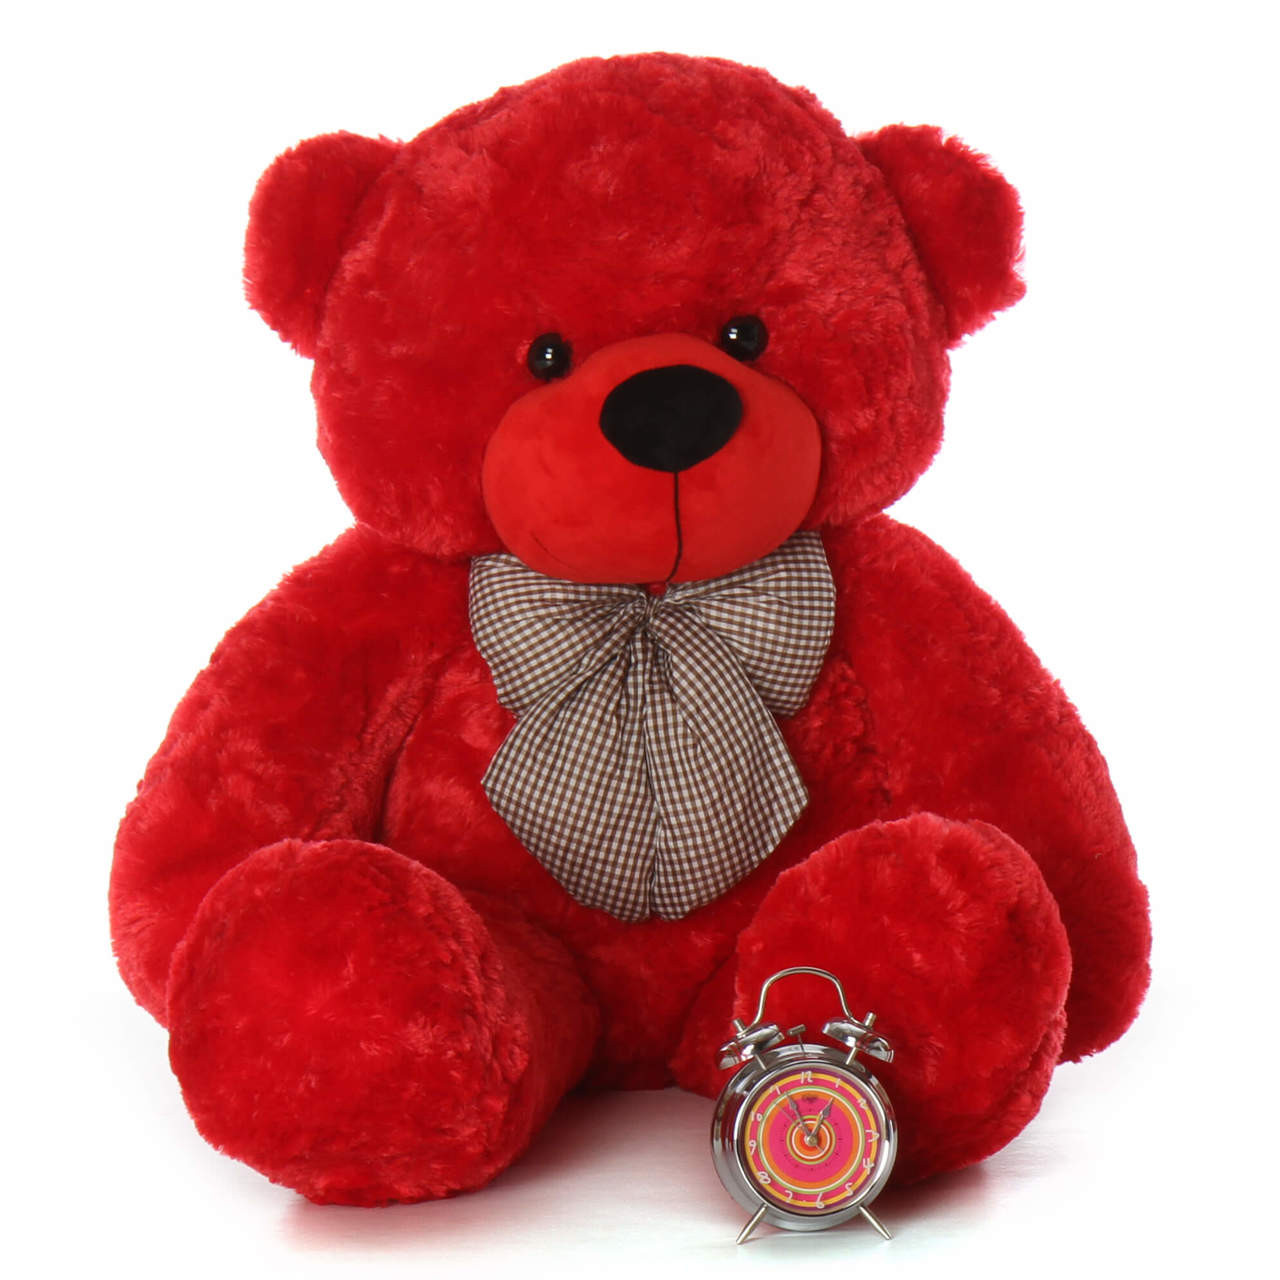 4ft Red Life Size Teddy Bear Bitsy Cuddles from Giant Teddy brand